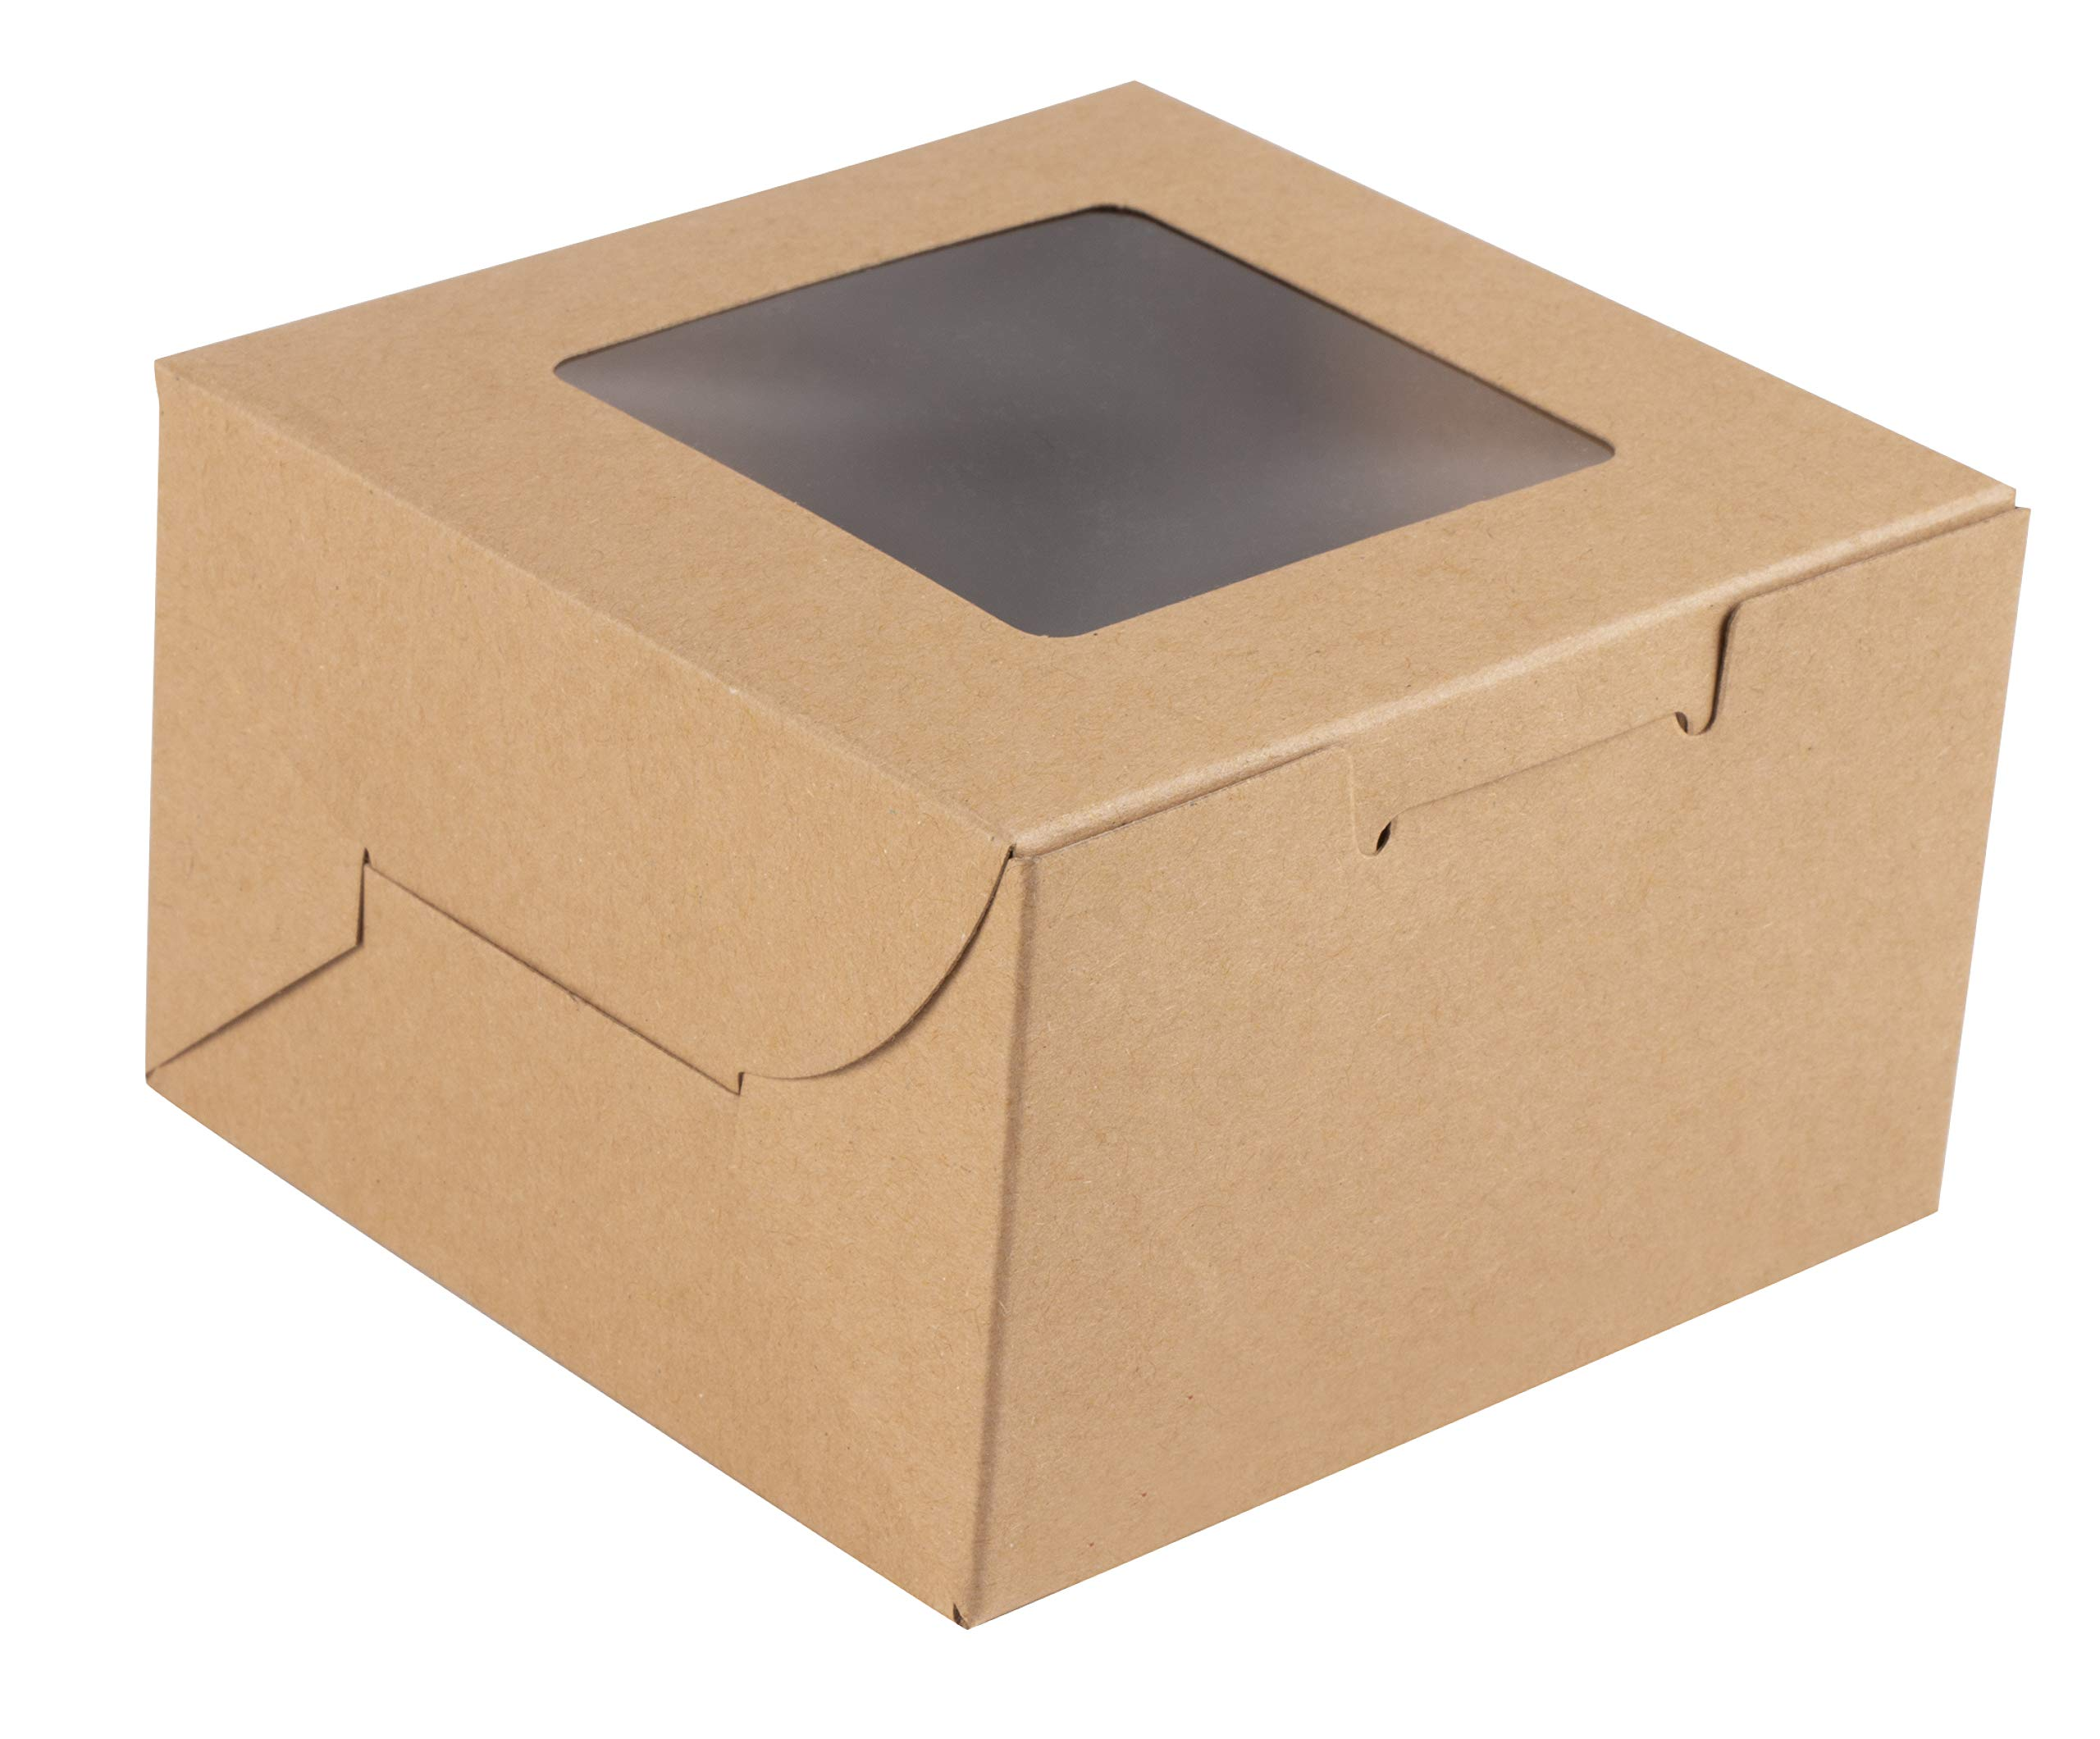 Kraft Paper Bakery Boxes - 50-Pack Single Pastry Box 4-Inch Packaging with Clear Display Window, Donut, Mini Cake, Pie Slice, Dessert Disposable Take-Out Container, Holds 1, Brown, 4 x 2.3 x 4 Inches by Juvale (Image #5)